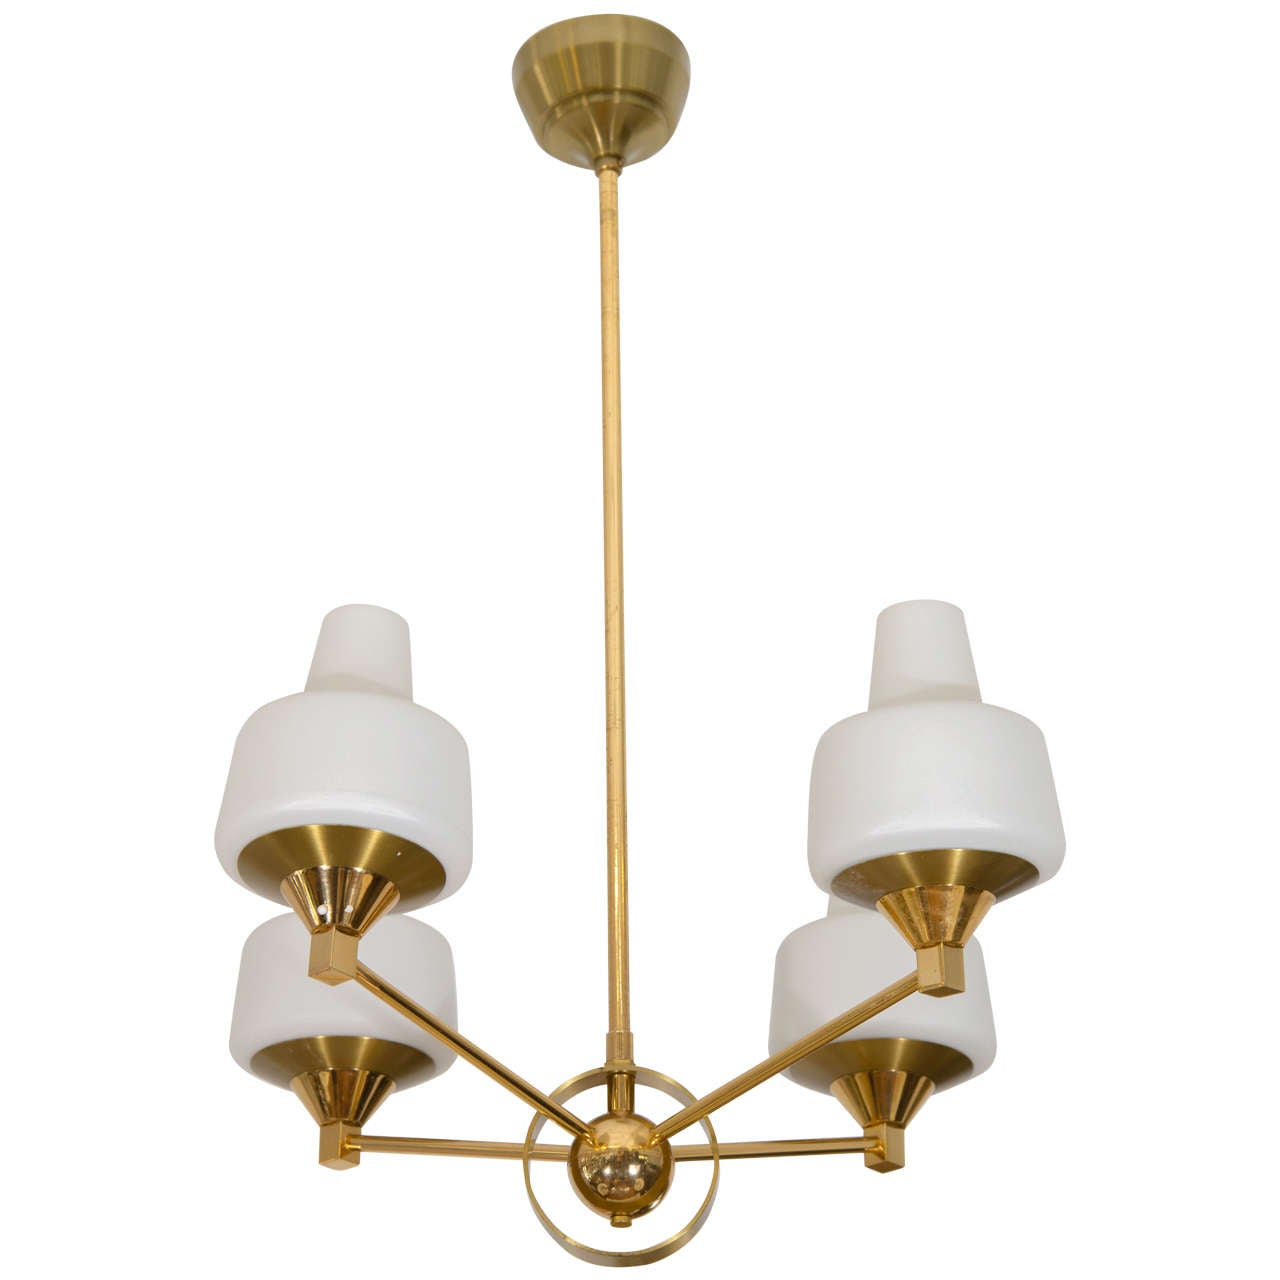 Pendant lighting frosted glass : Midcentury brass and frosted glass four arm pendant light